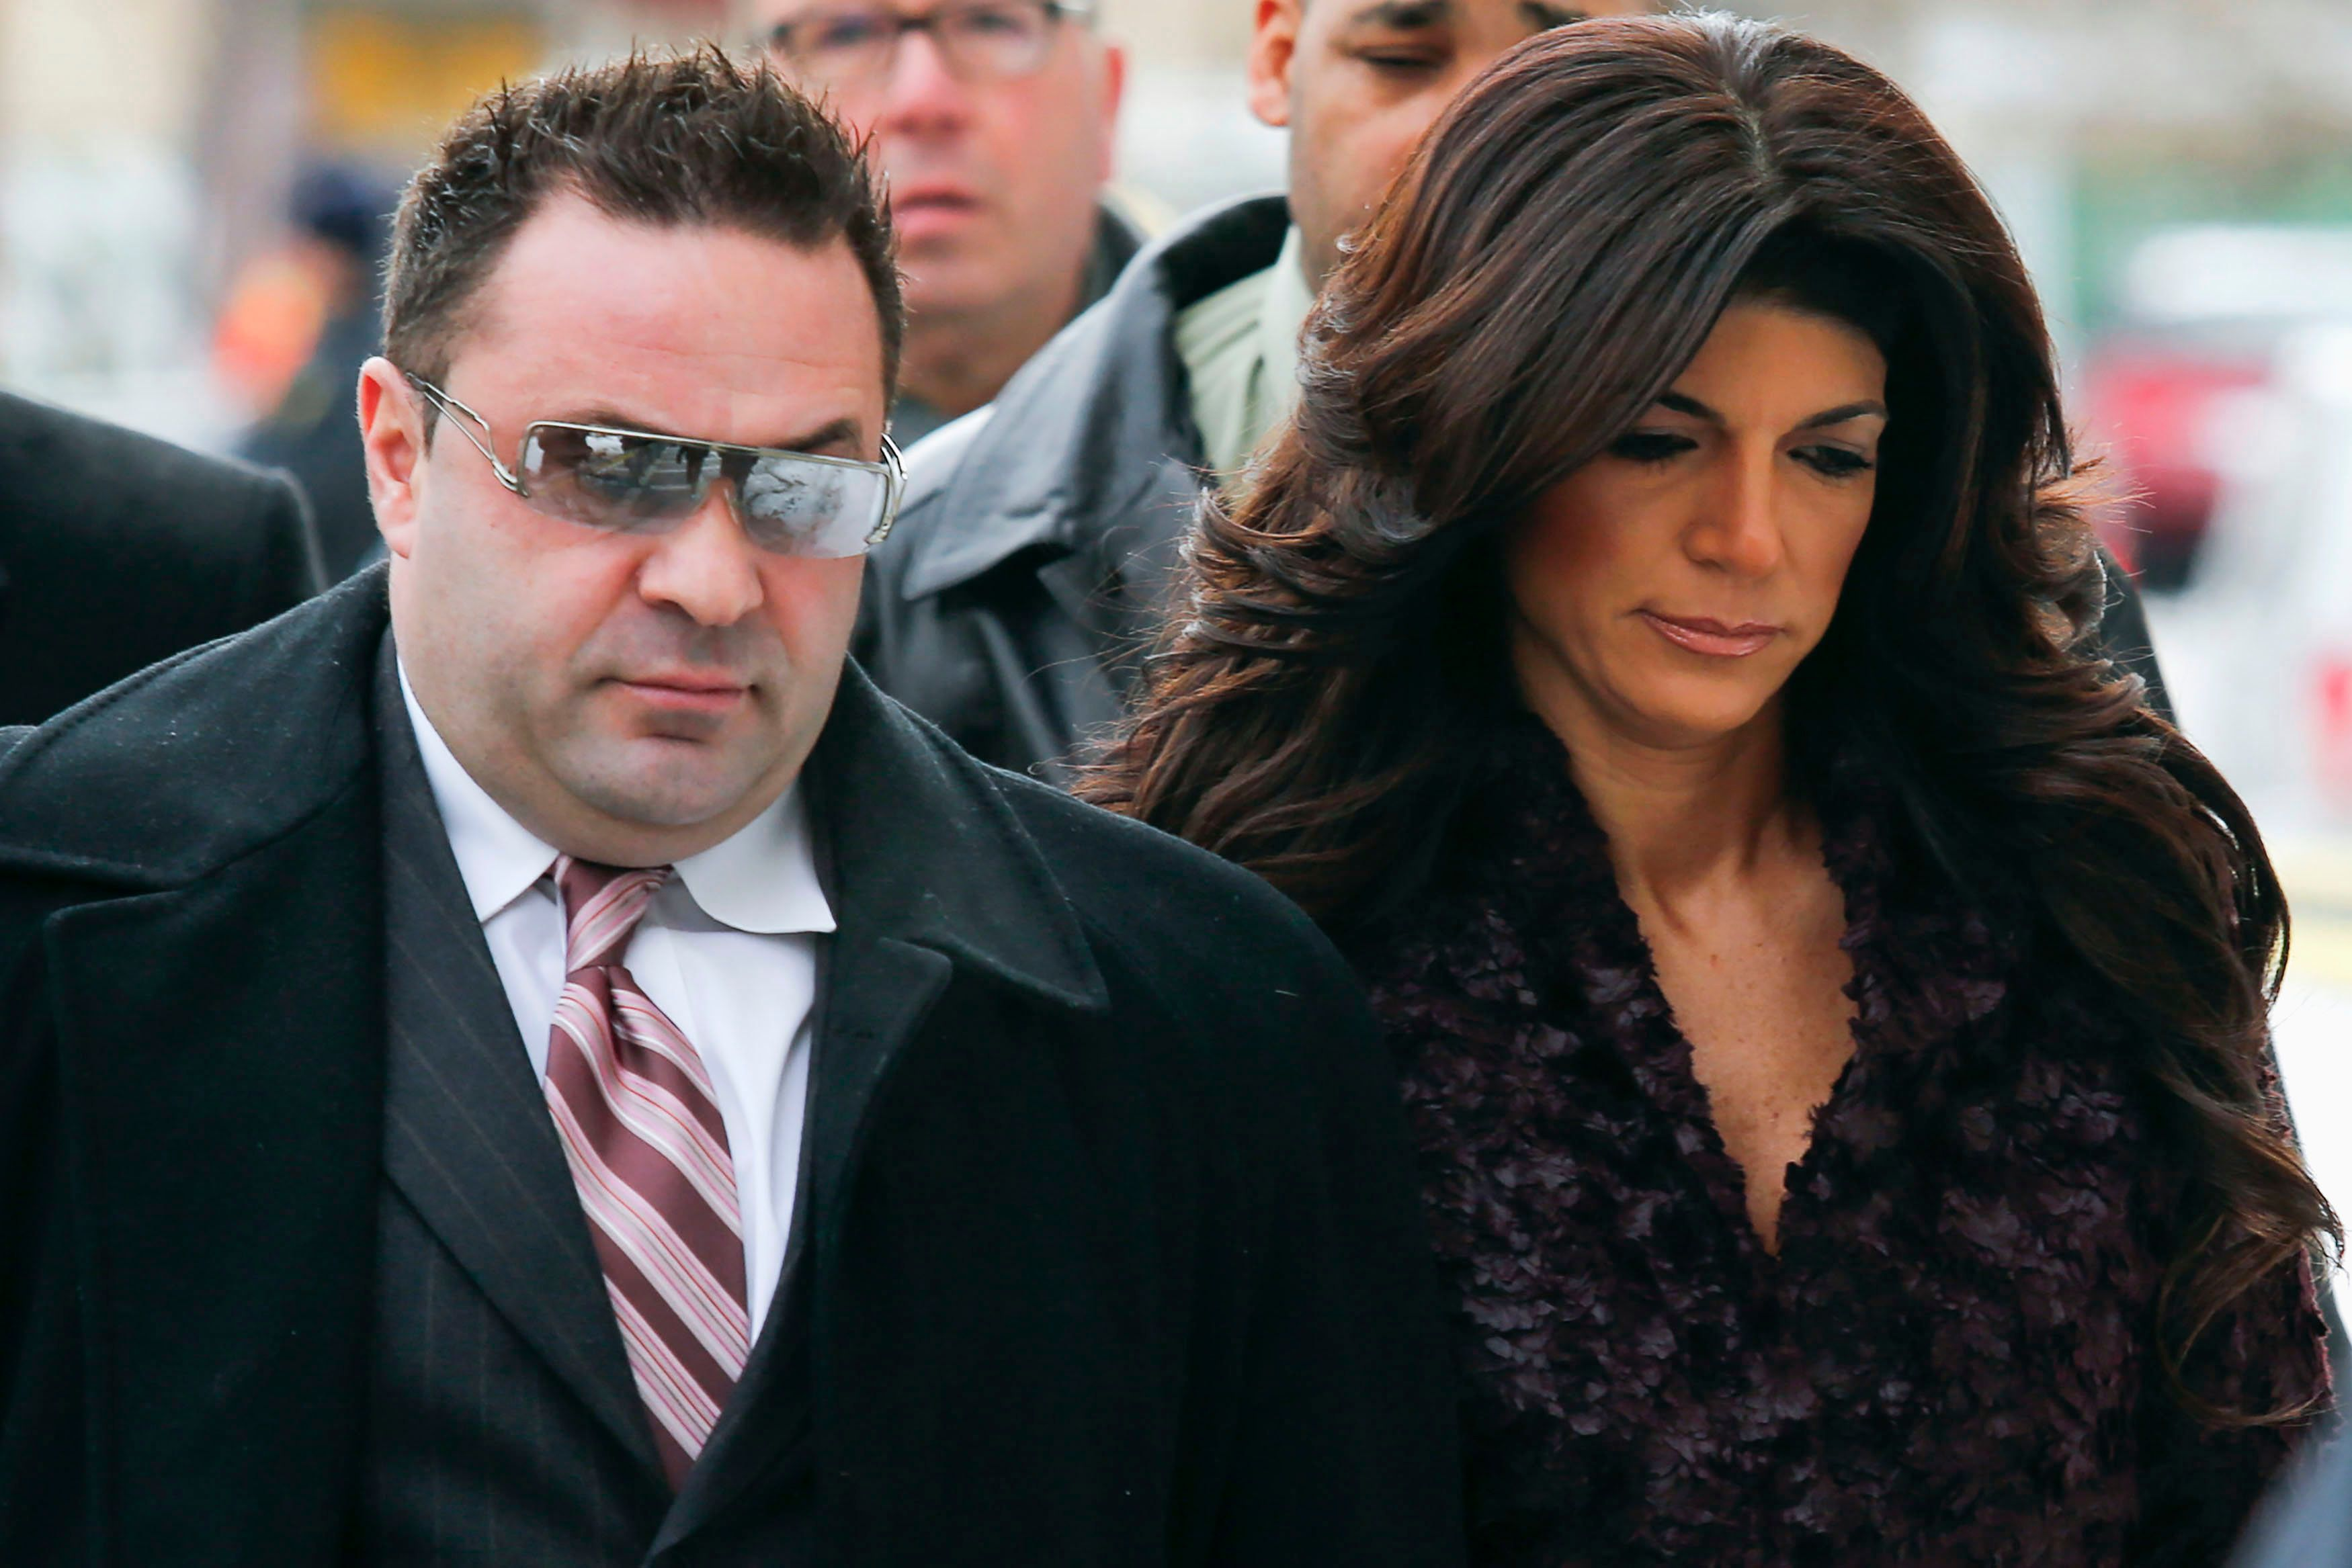 'Real Housewives Of New Jersey' Star Joe Giudice To Be Deported After Prison Time